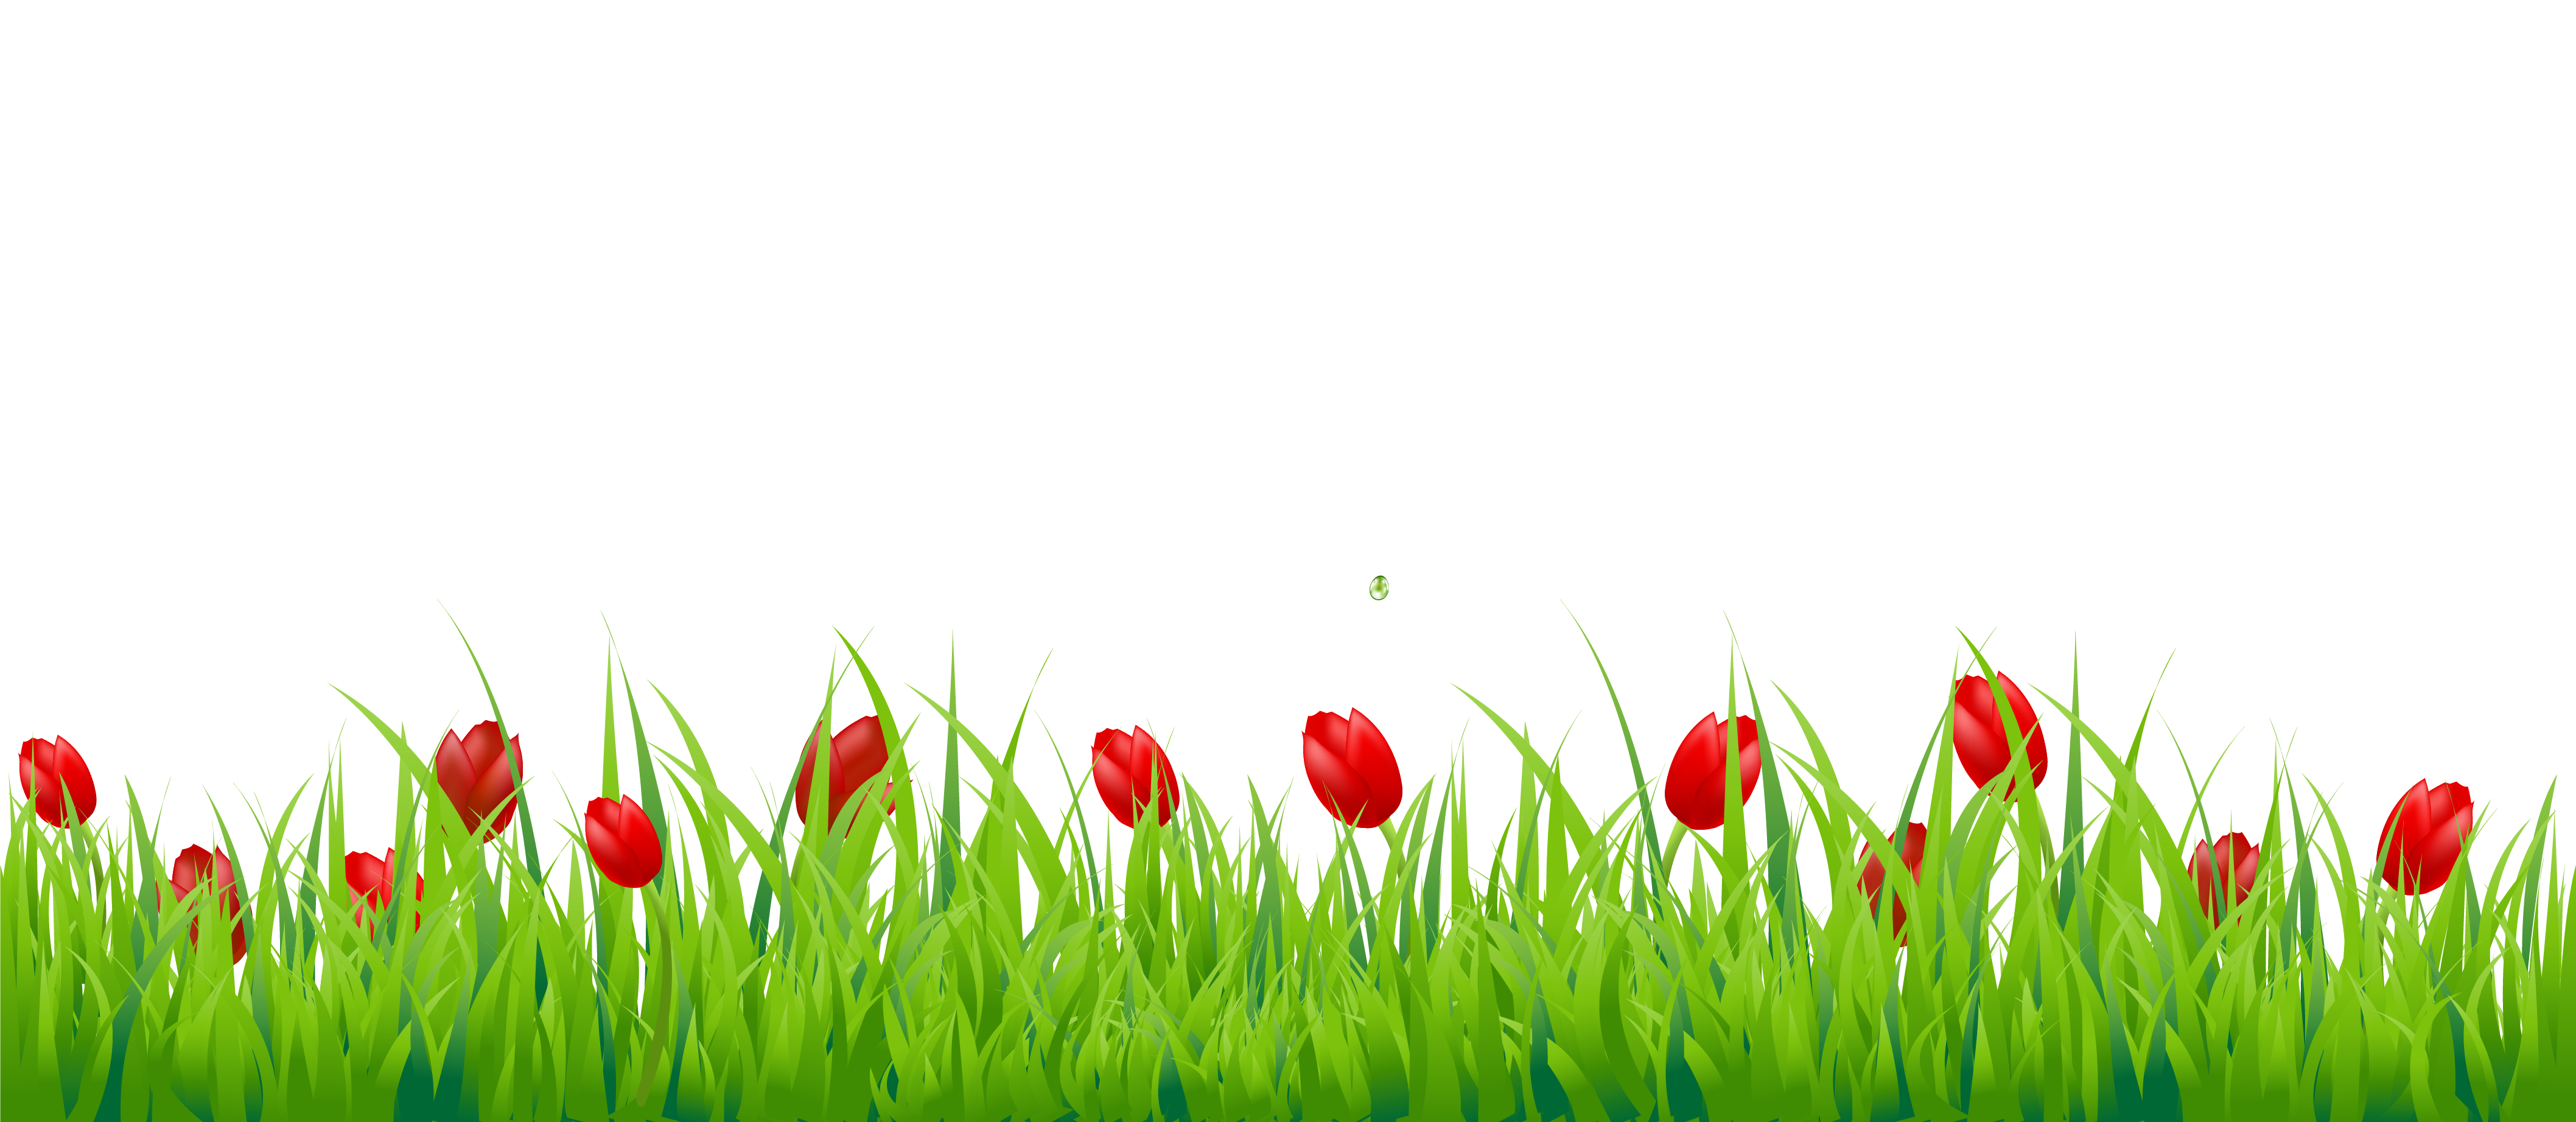 Vector grass png. Transparent image in maadco